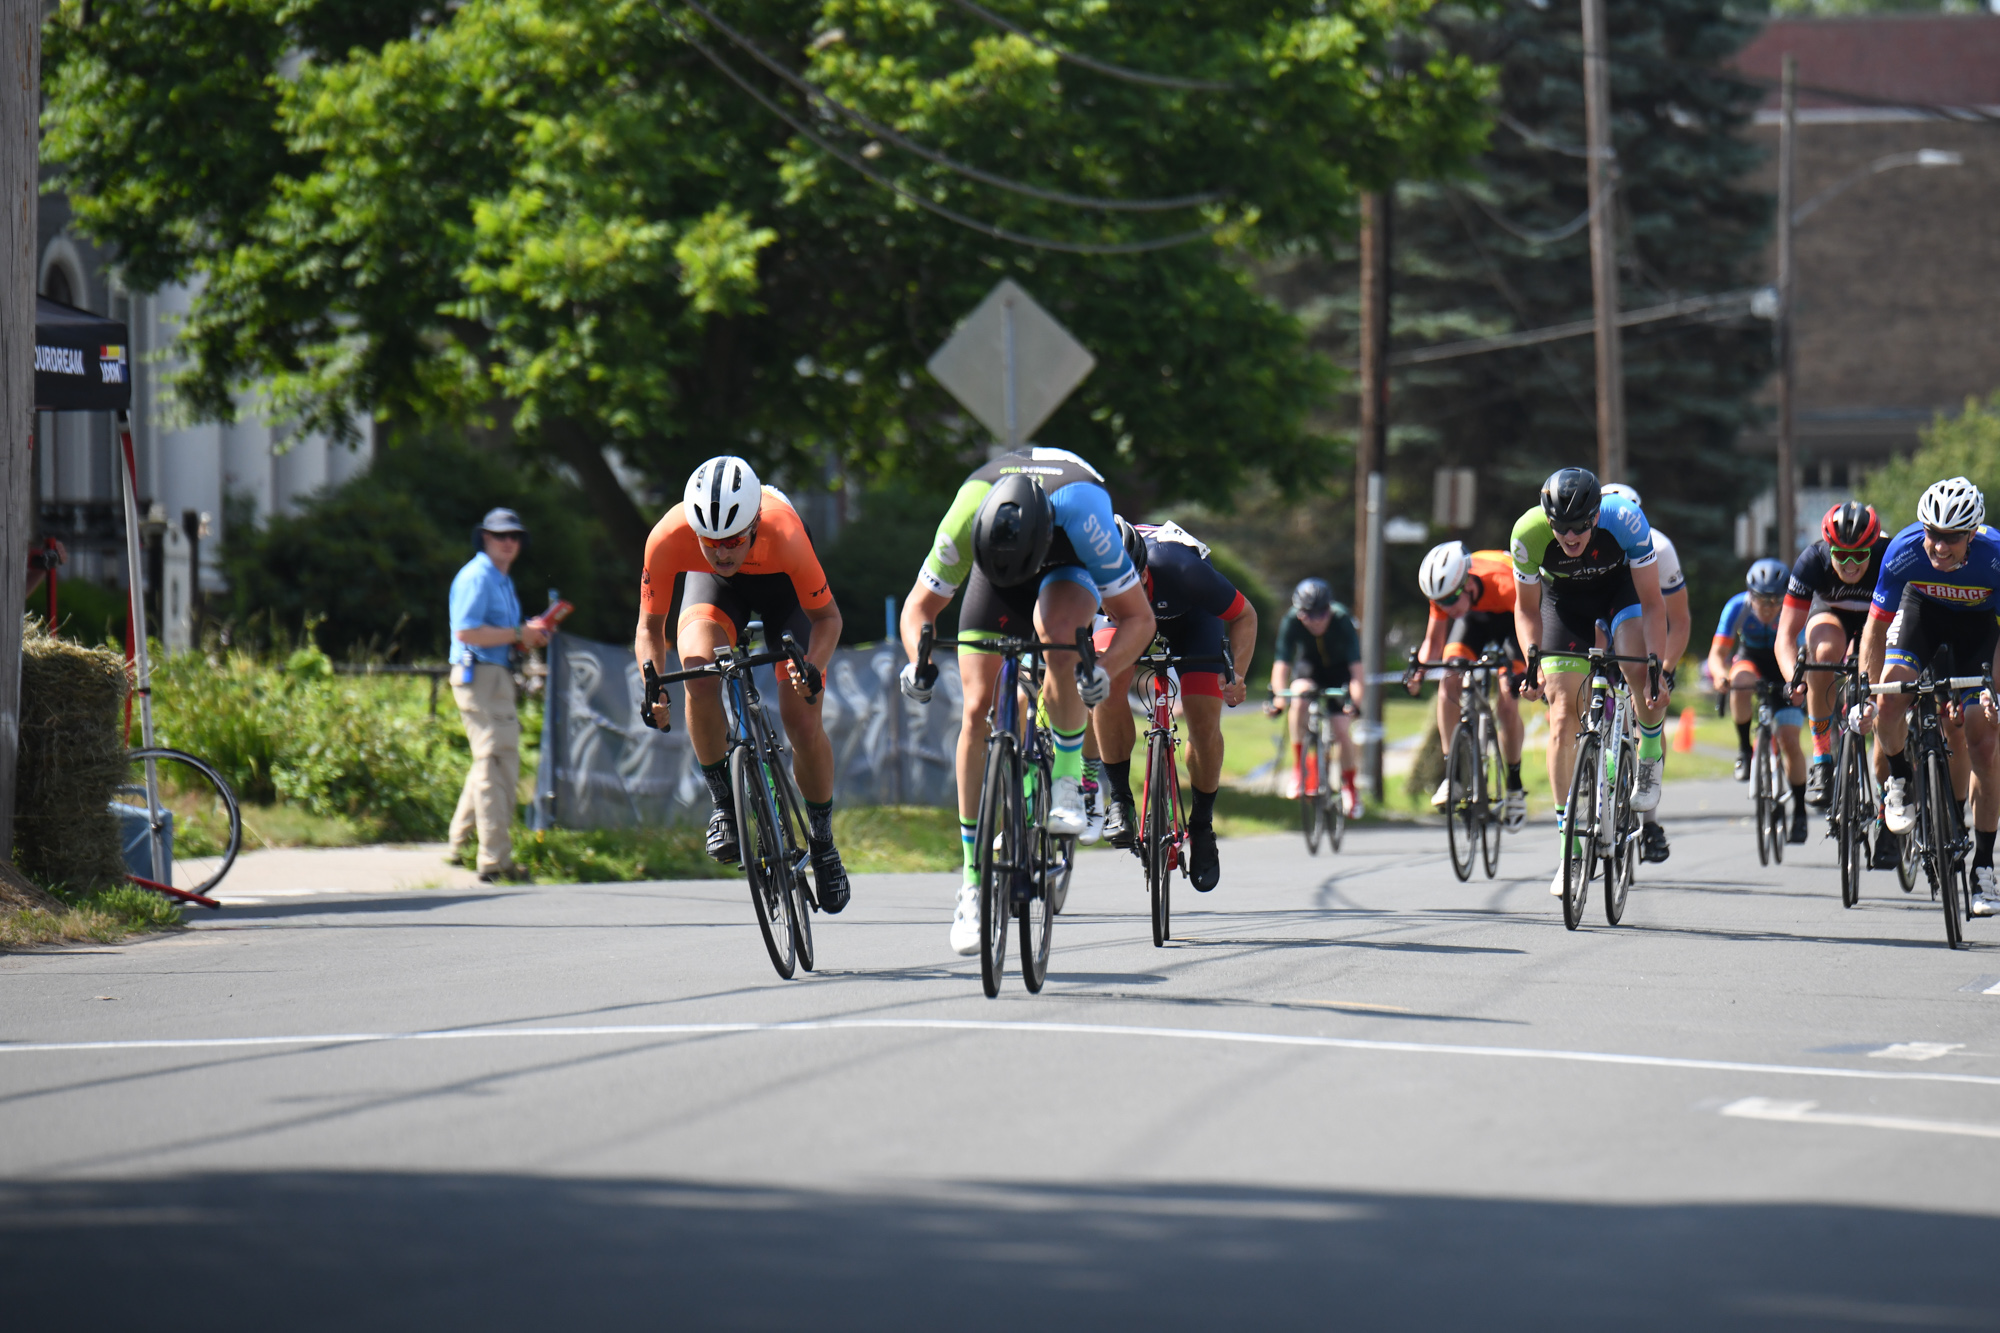 David Sutherland took the win in a large field sprint